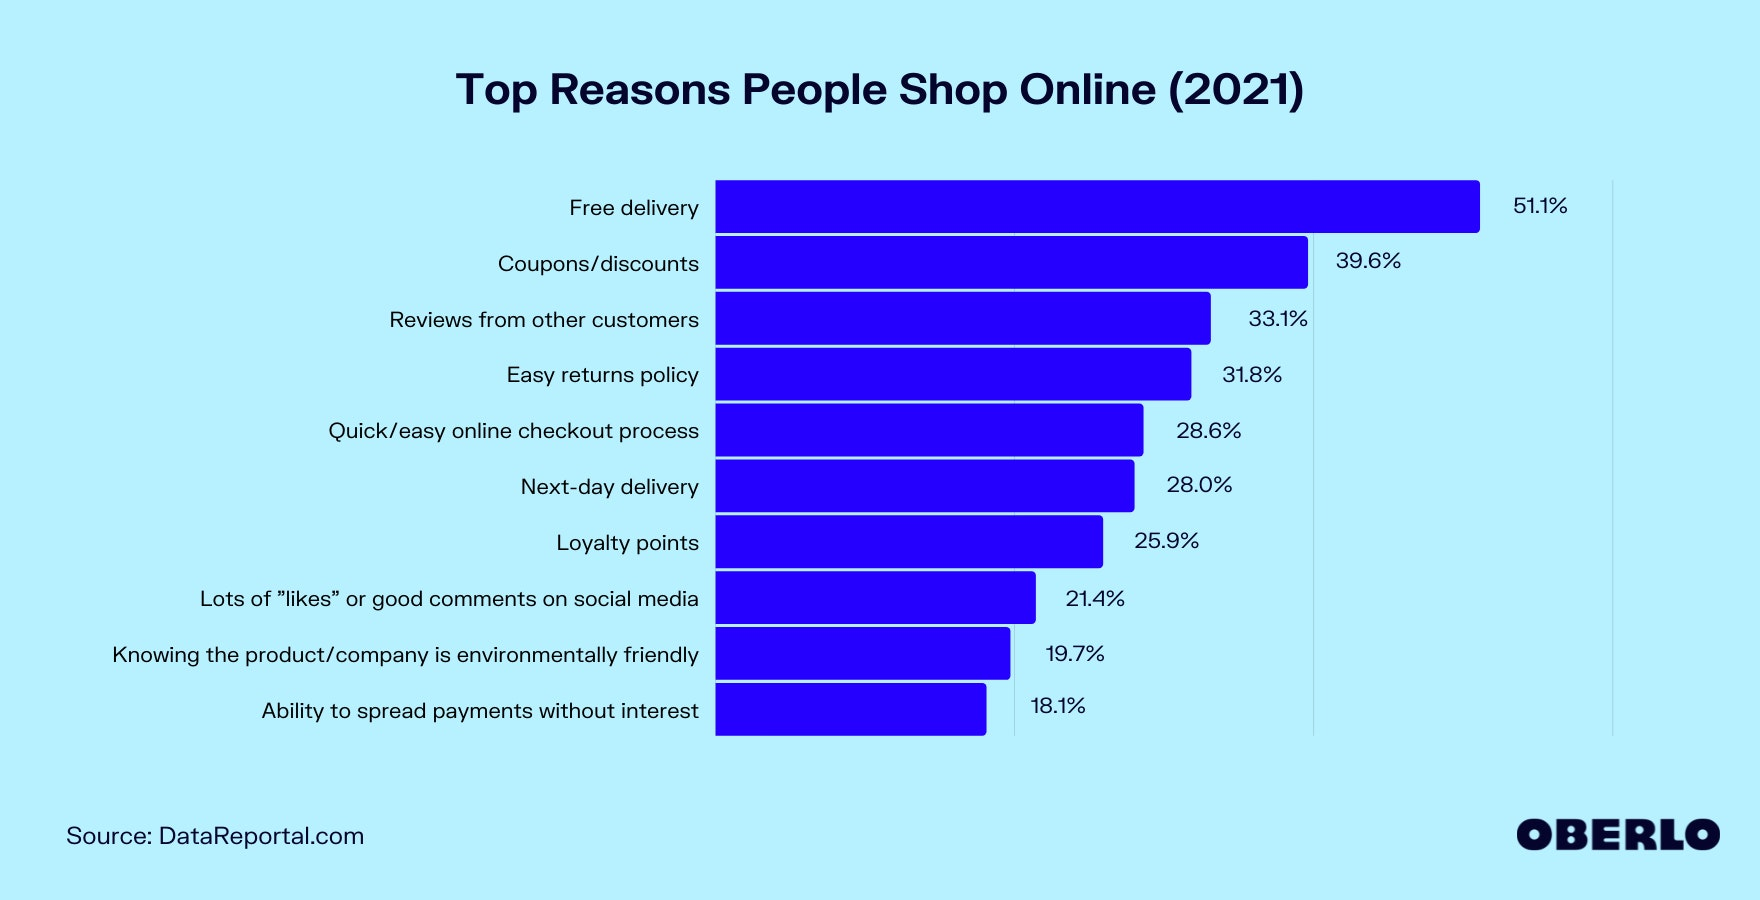 Chart of Top Reasons People Shop Online (2021)